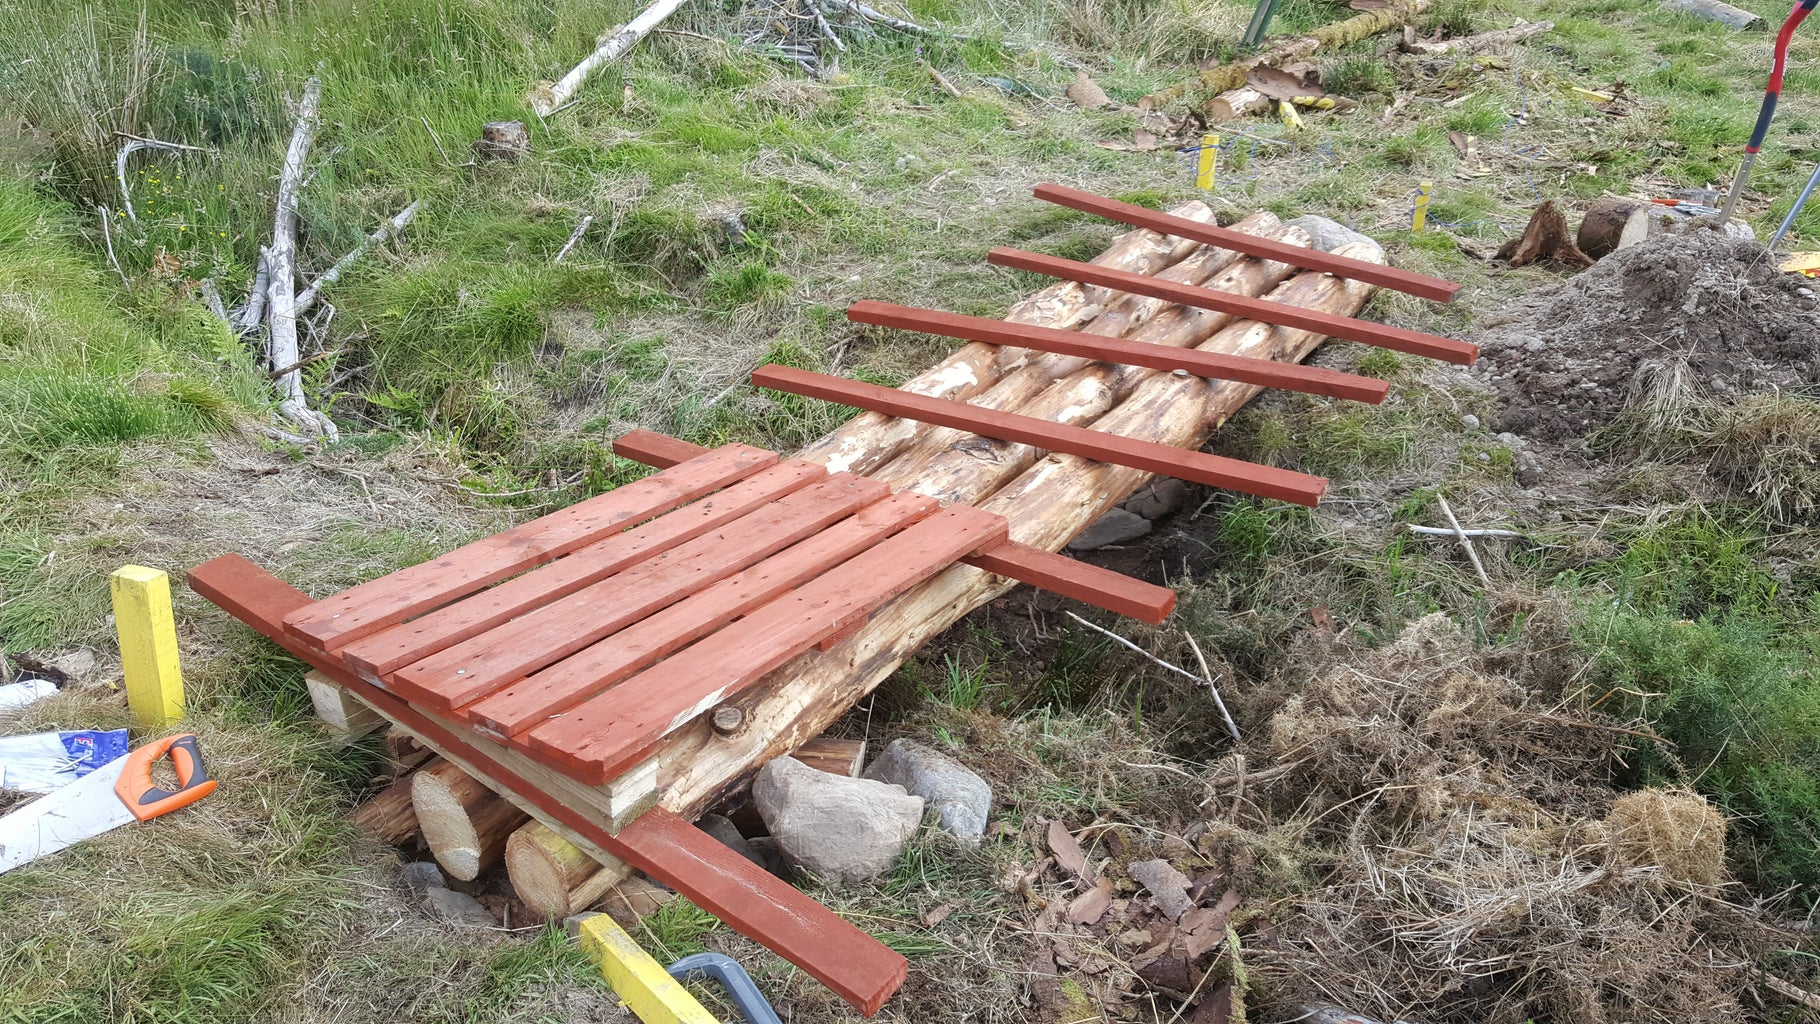 Laying the Wooden Pallet Tops and Sponsons